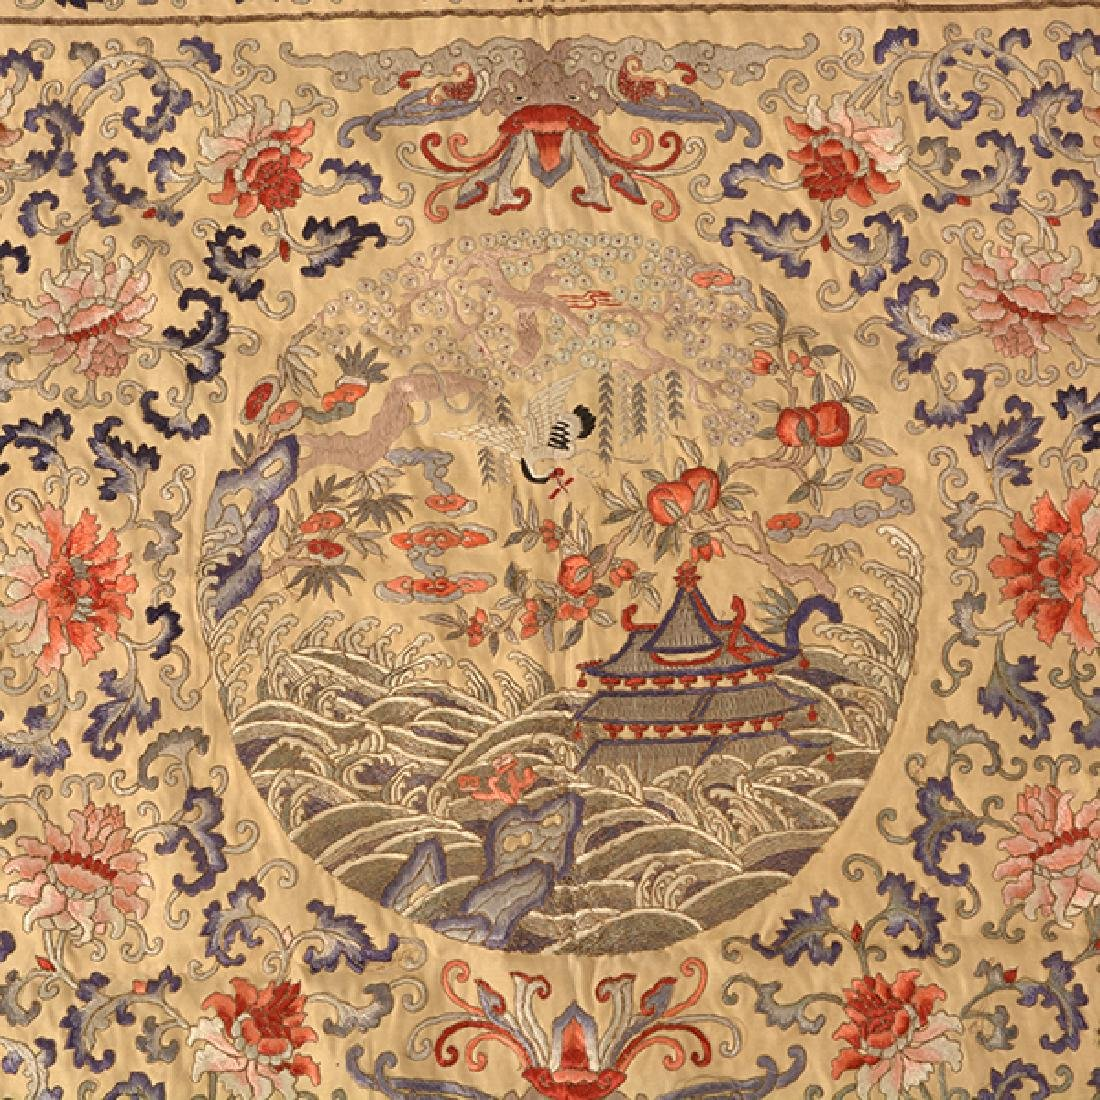 An Embroidered Square Panel, 19th Century - 2